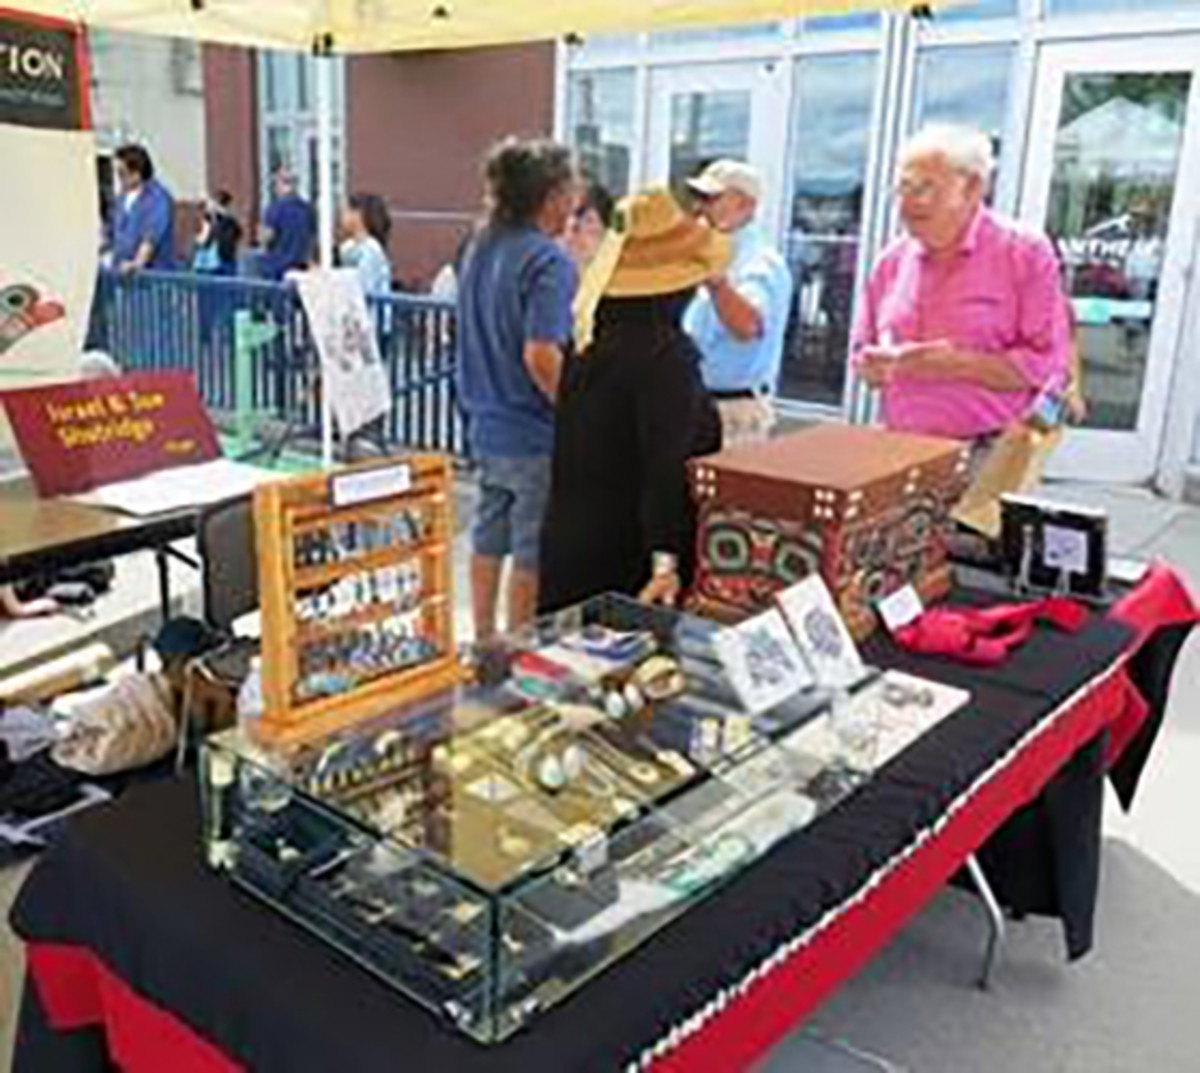 Pictured: IN THE SPIRIT Arts Market and Northwest Native Festival, vendor talking with visitors on the plaza at the Washington State History Museum (left) and visitors looking at Native carving. Visitors can shop among multiple artist vendors for a wide range of original art, textiles, leather goods, carvings, and more.